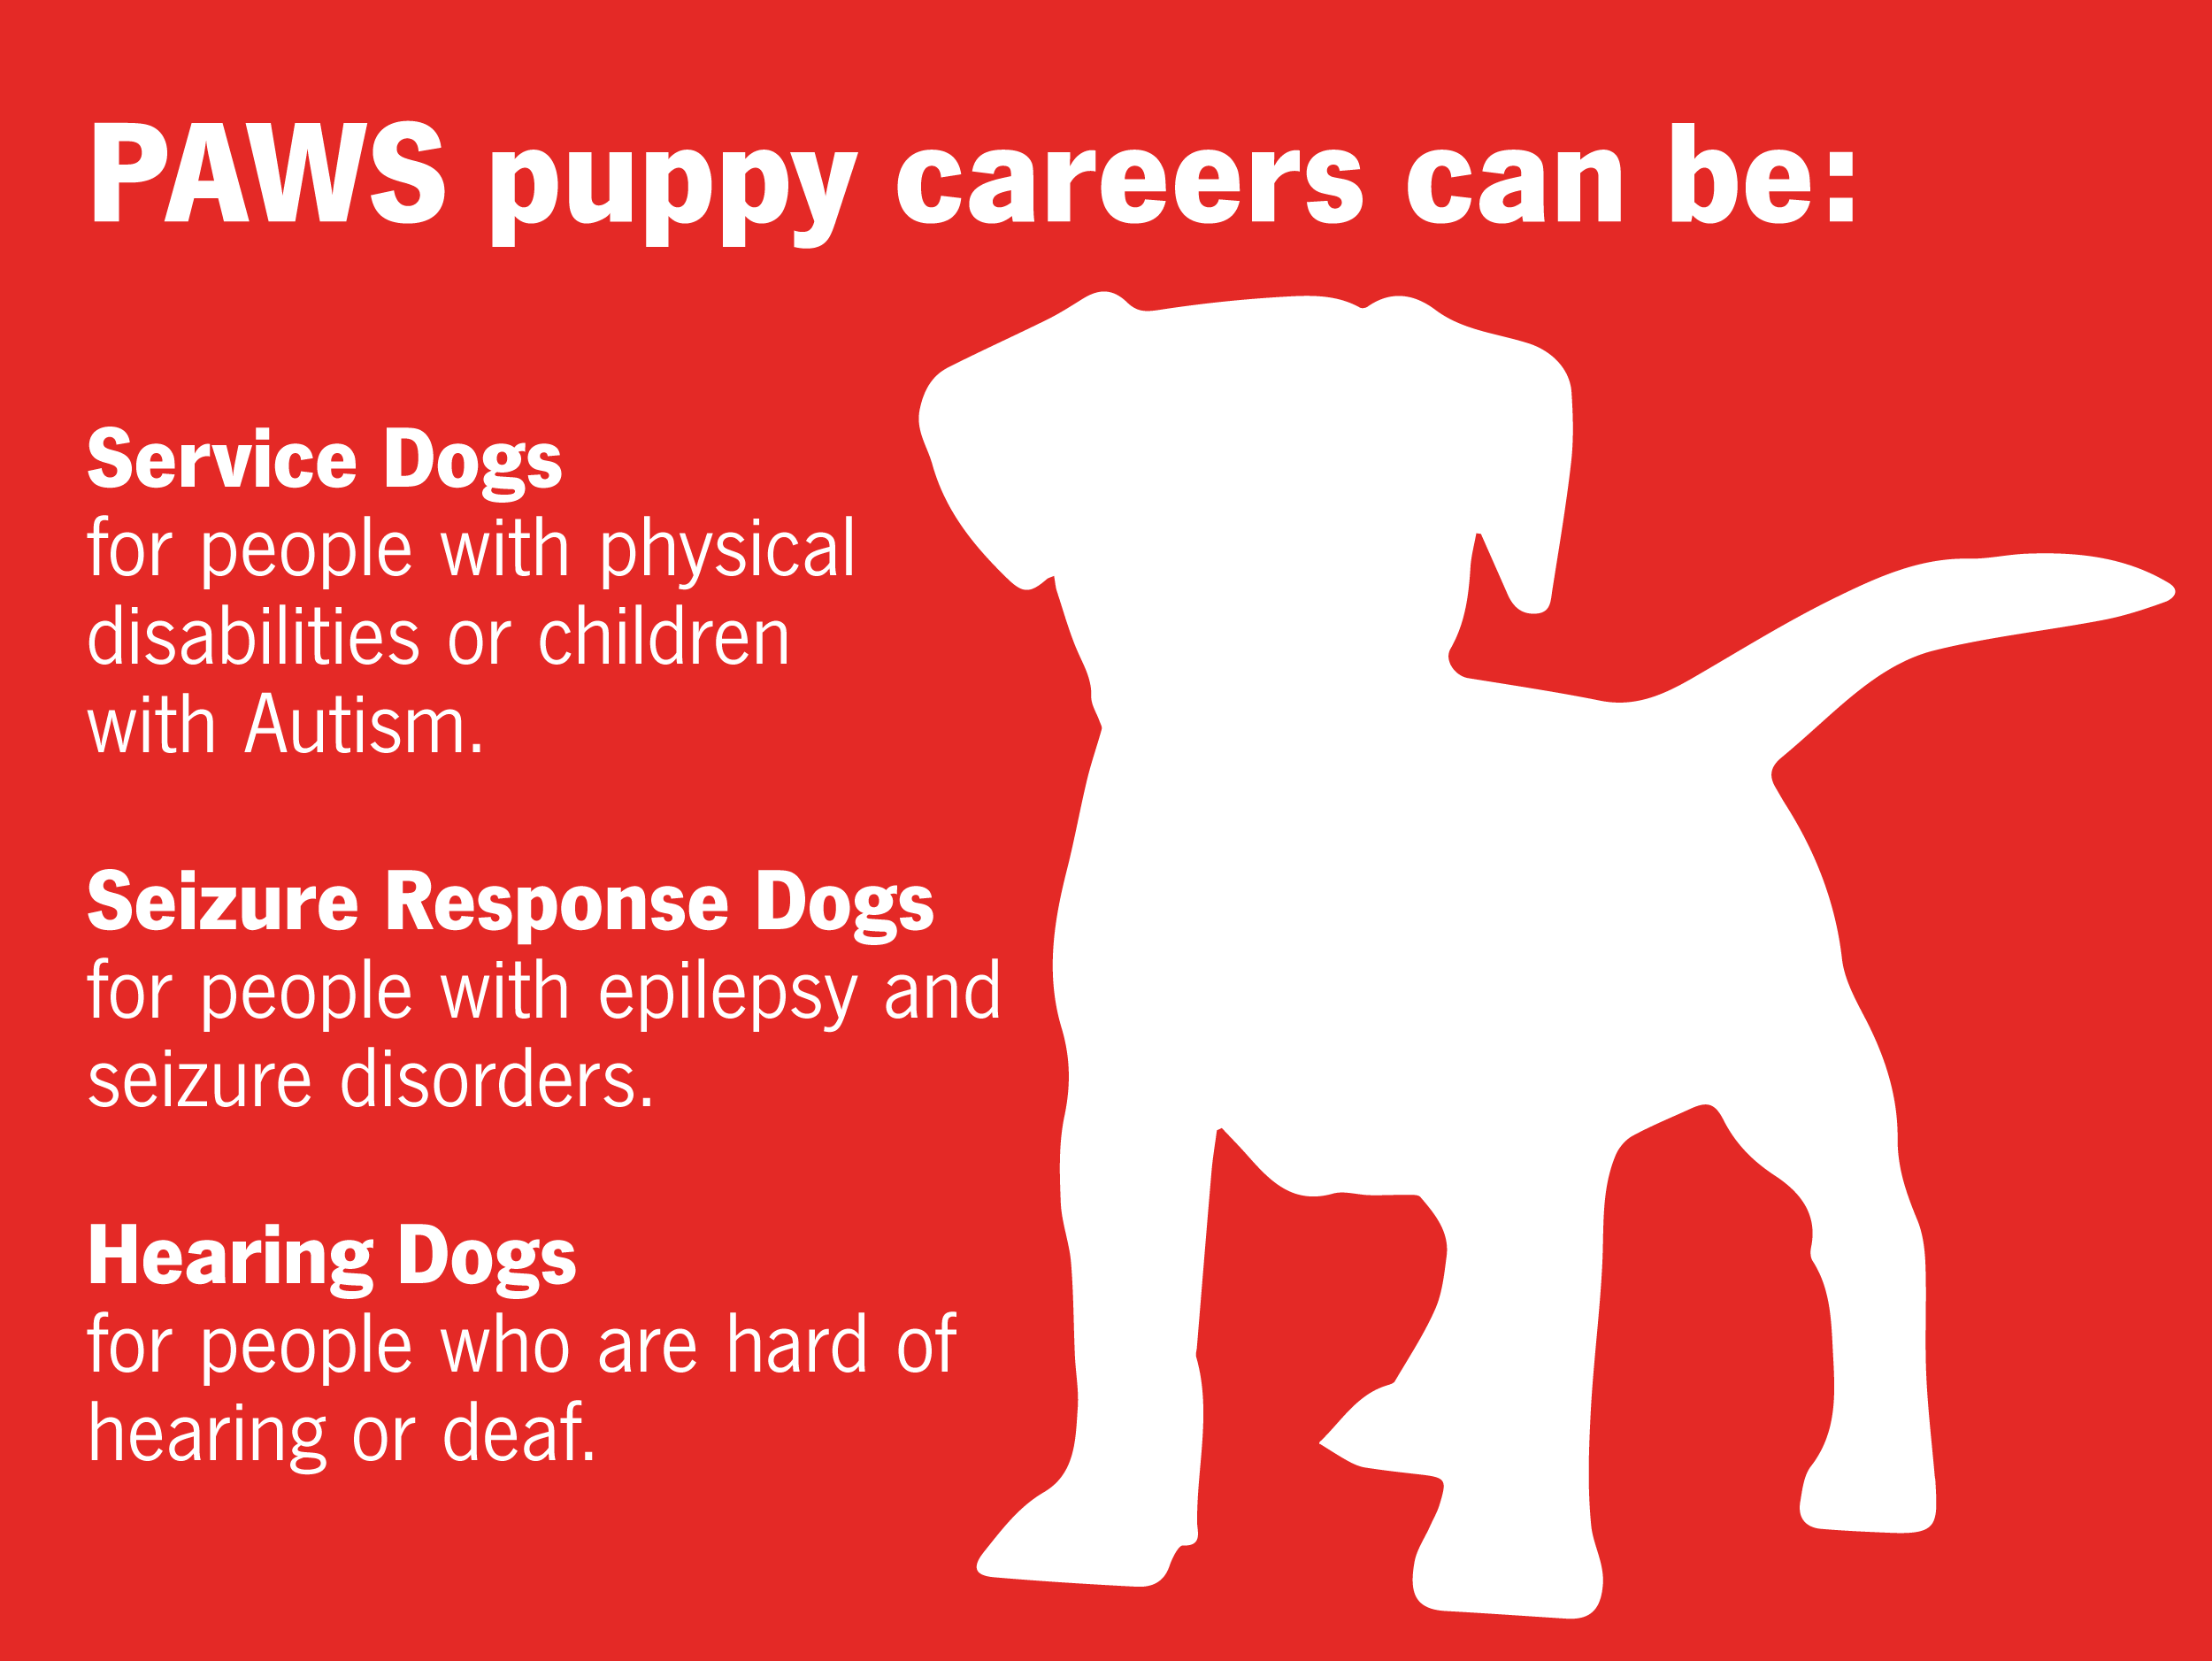 Puppies can be service dogs, seizure response dogs, or hearing dogs